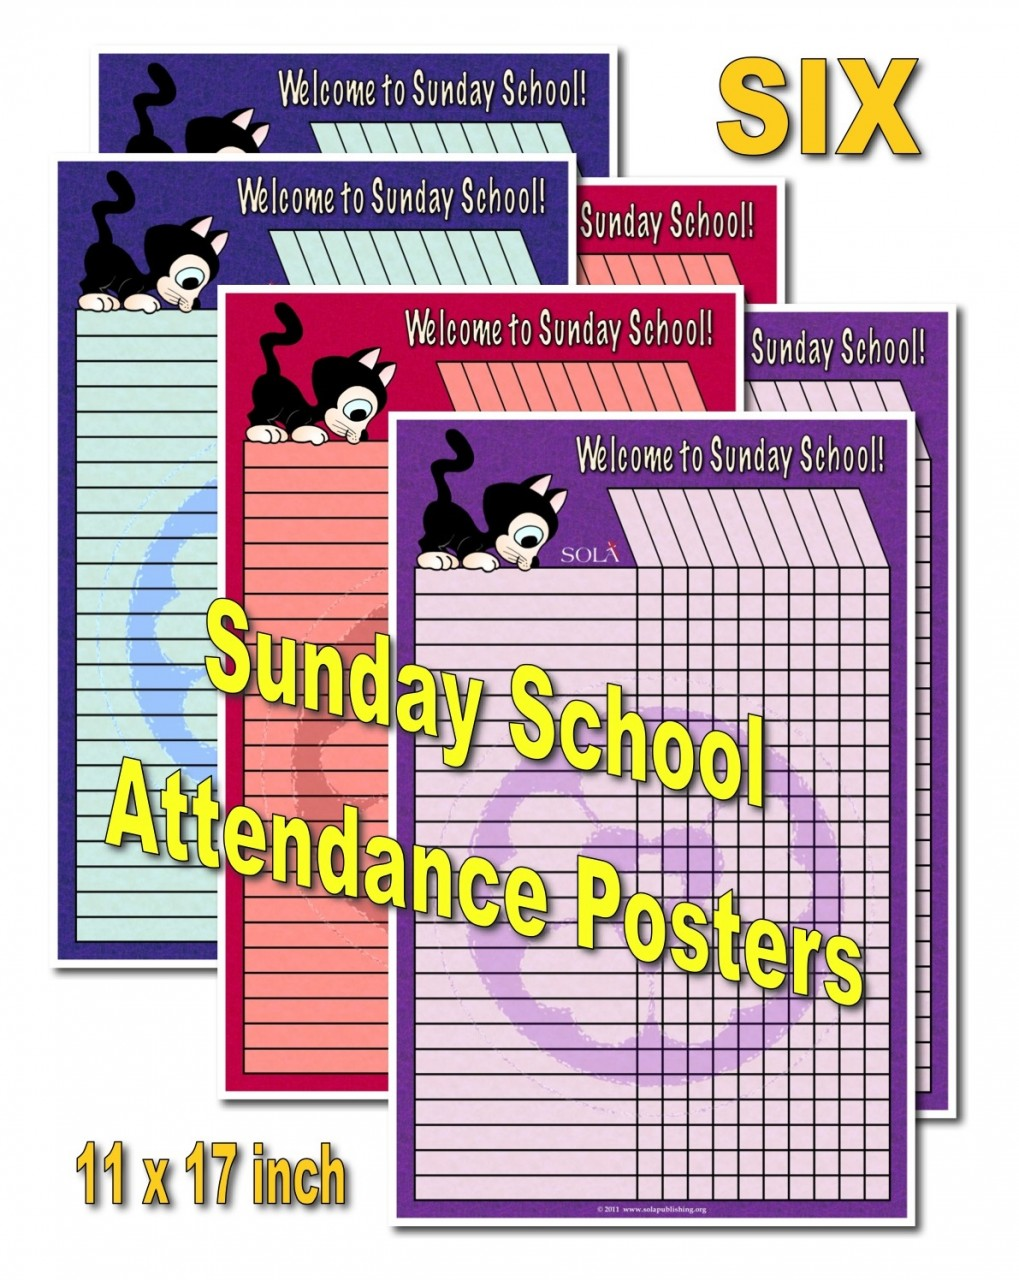 Sunday School Attendance Posters S-0110